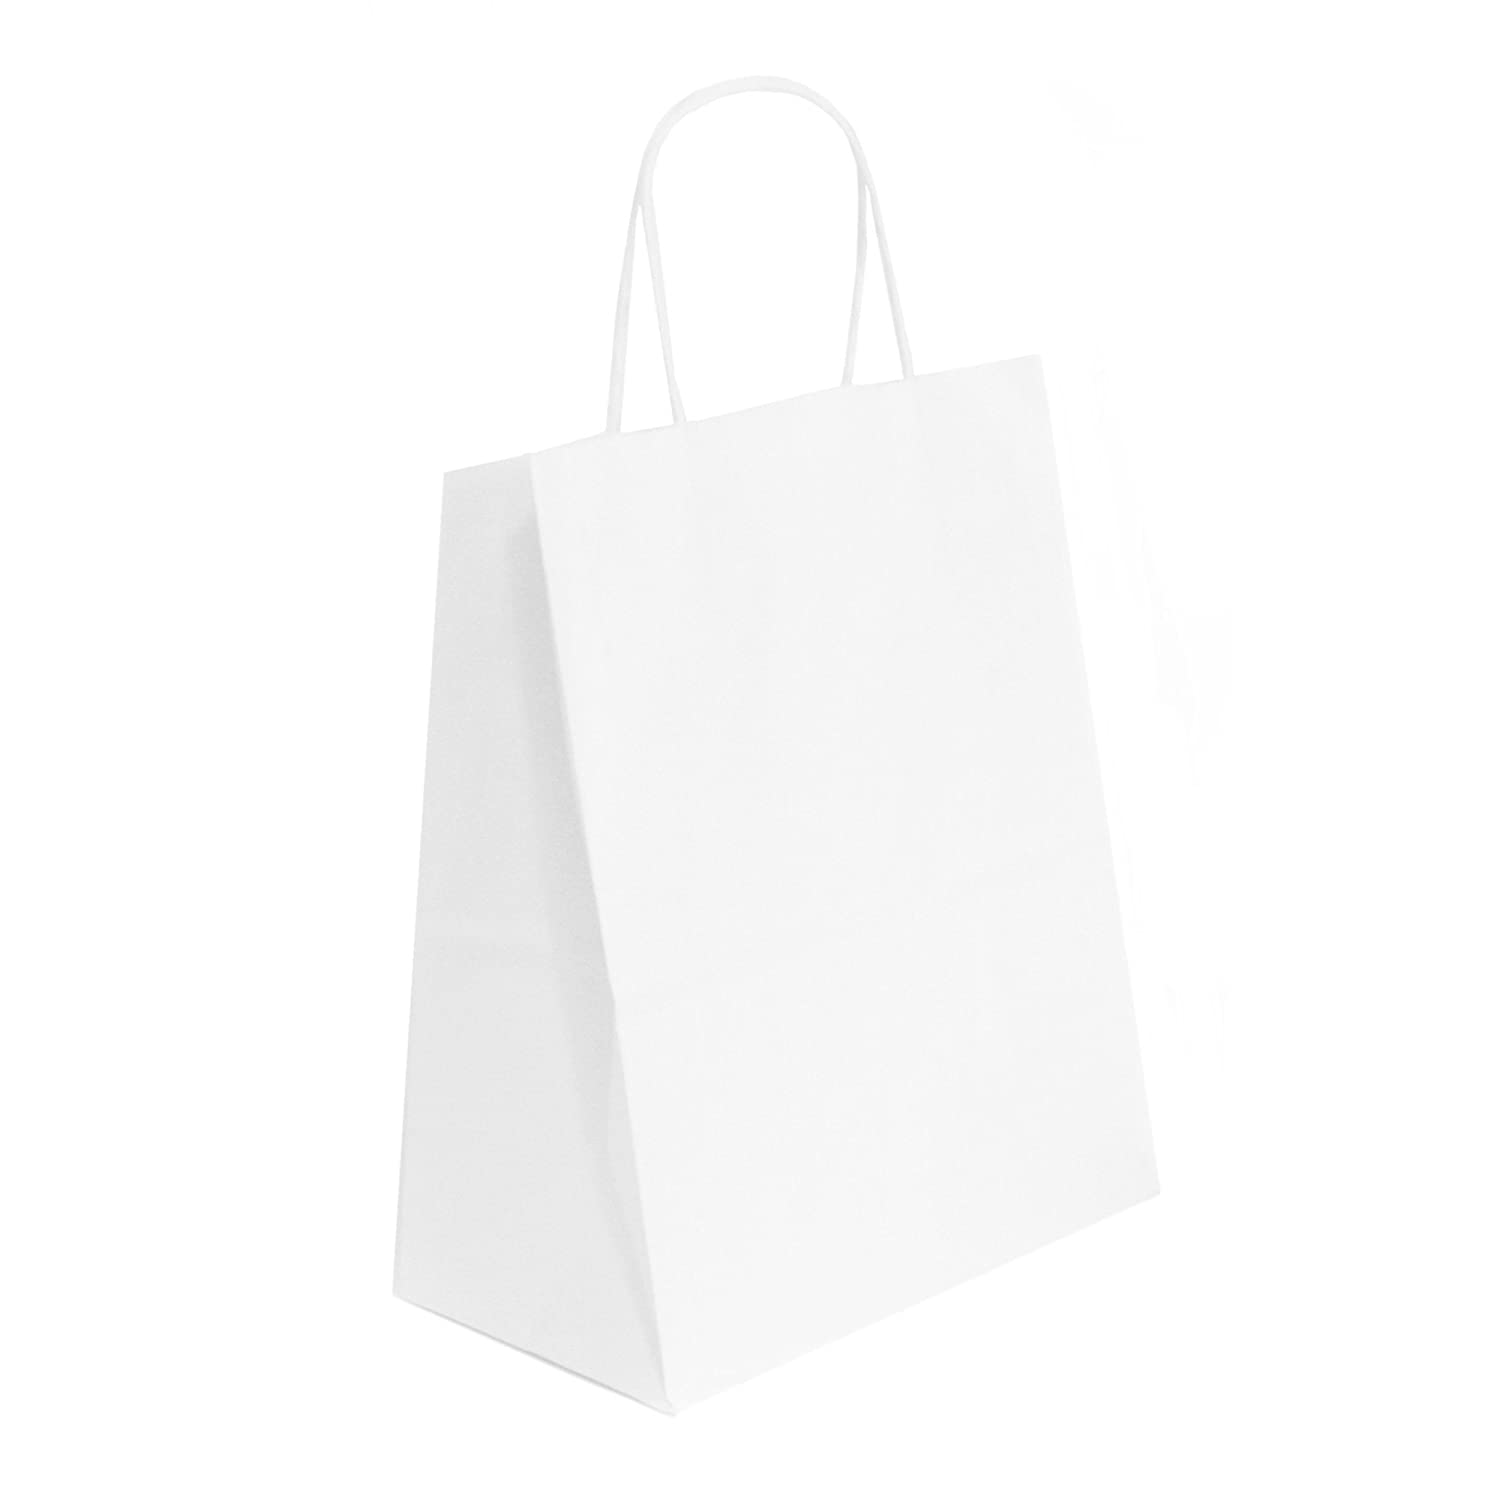 White Paper Shopping Bags, 14x9x16, 25ct, bulk 14x9x16 White Label